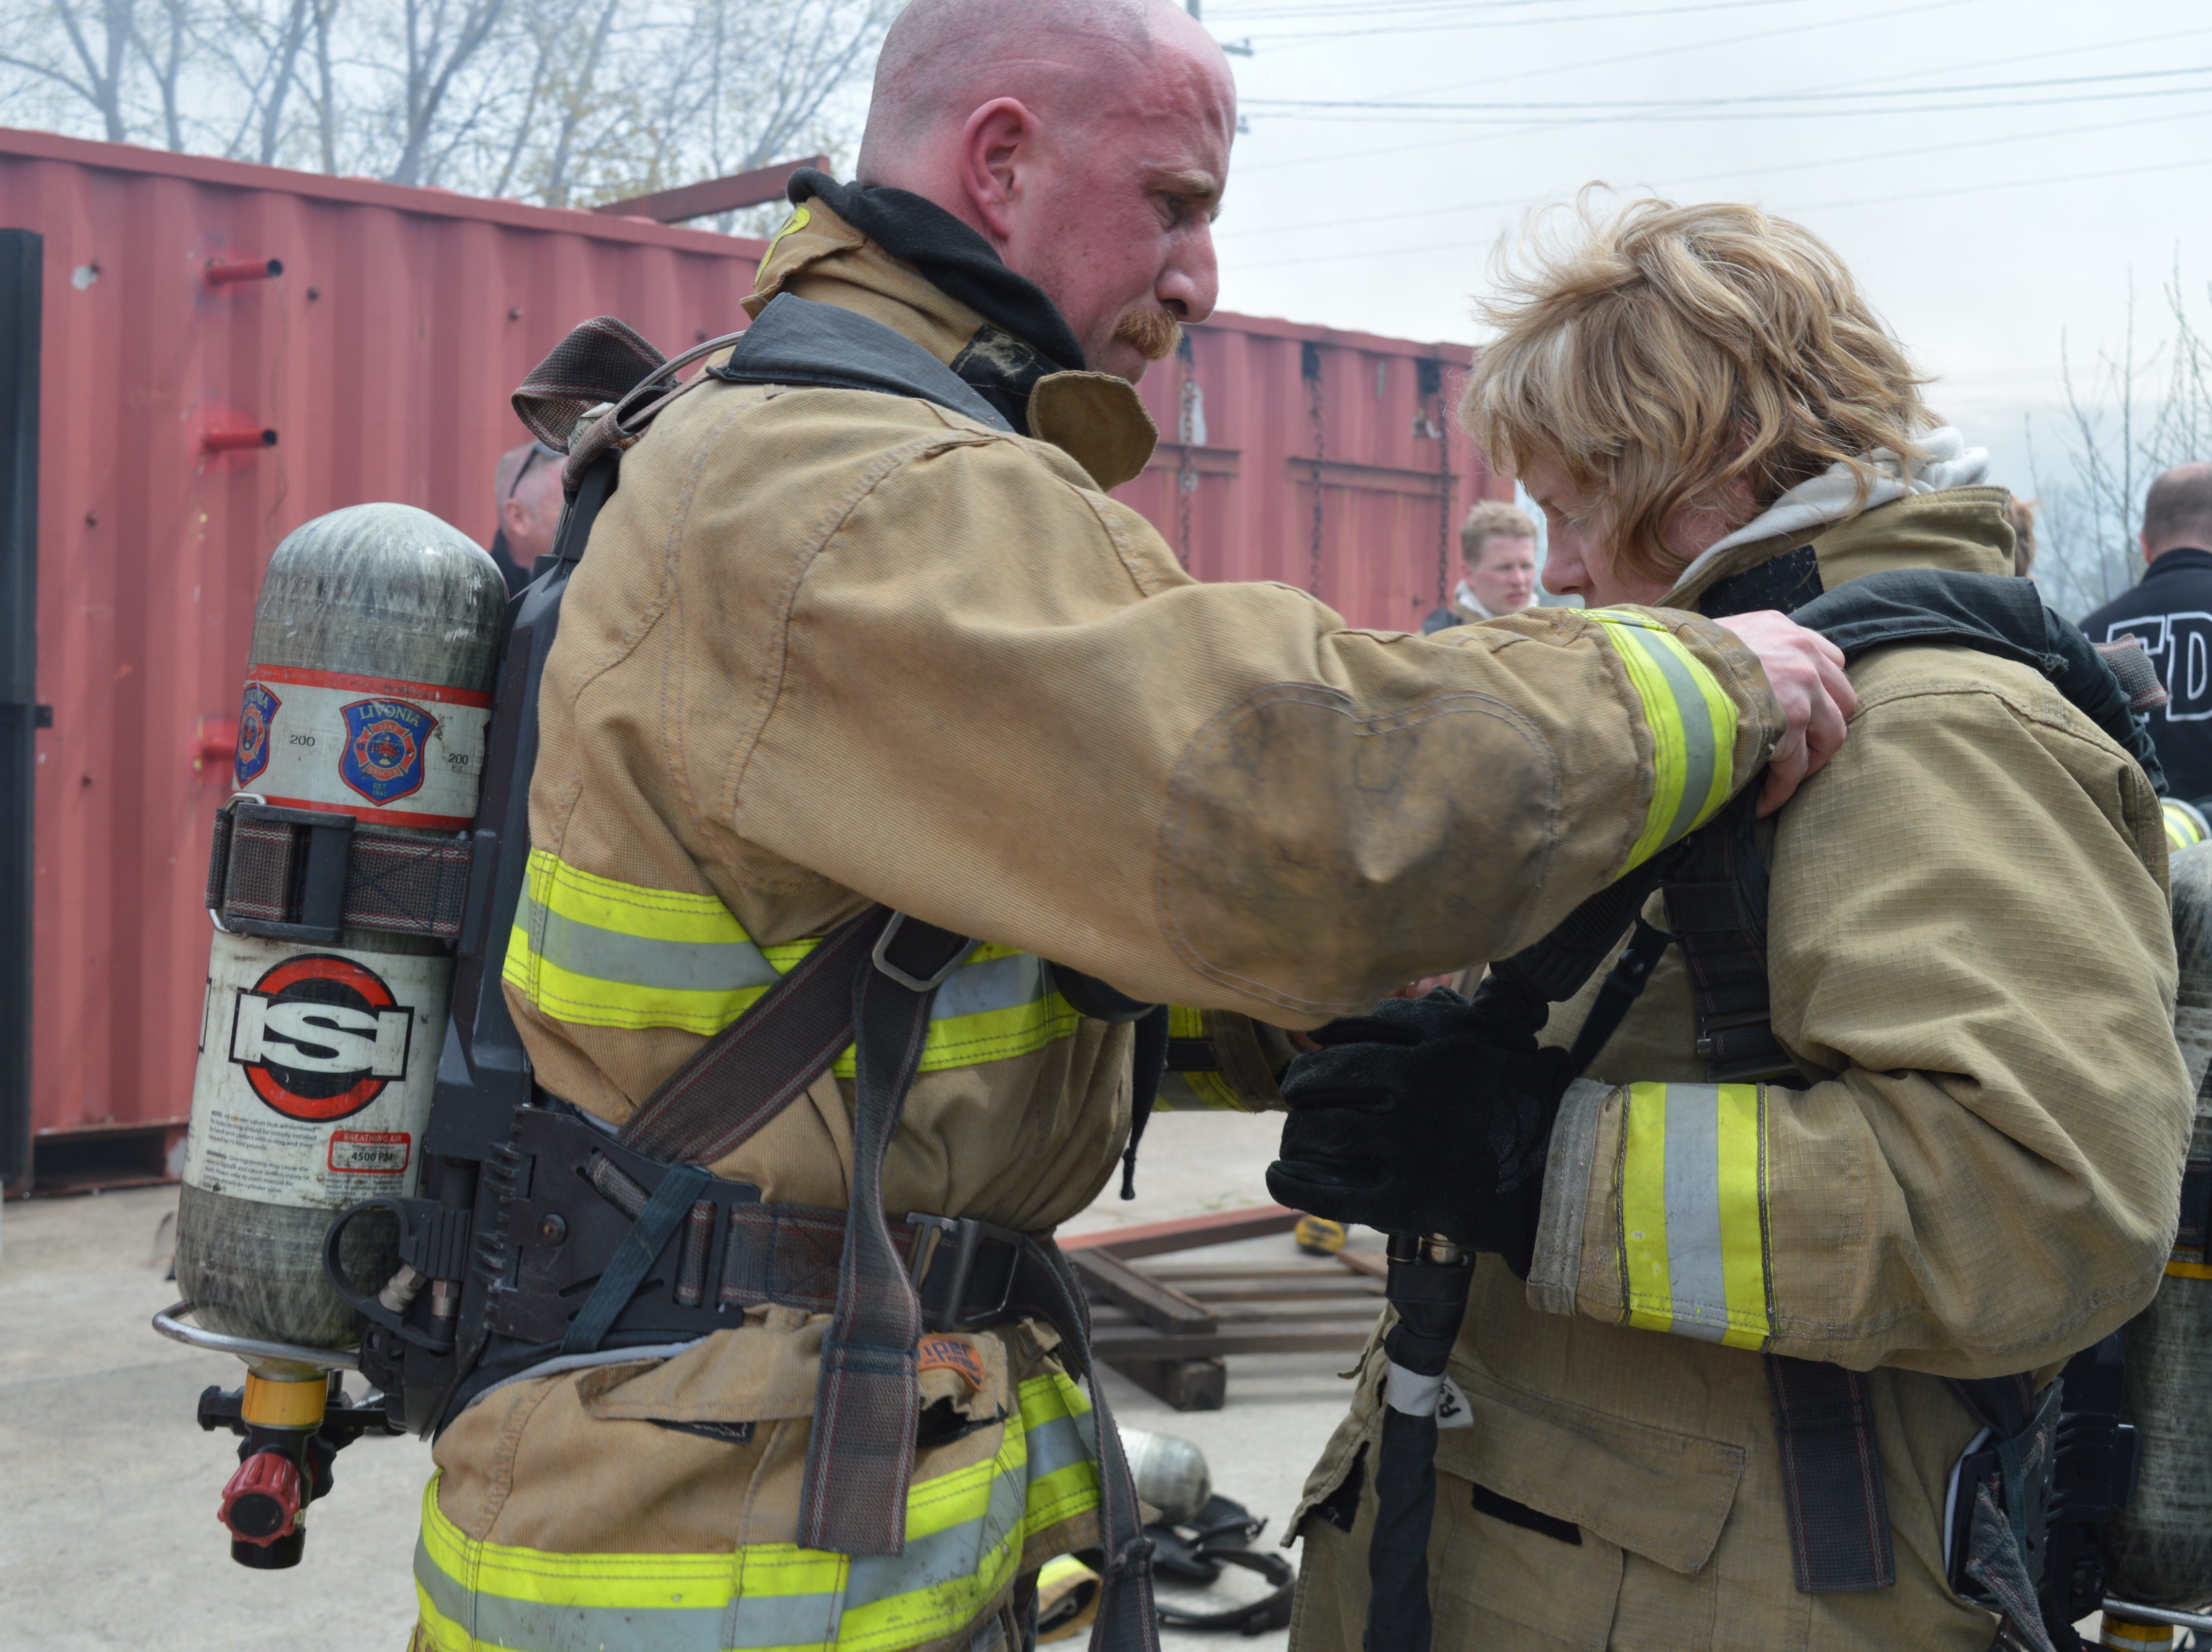 Livonia firefighter Scott Heraty helps Councilwoman Kathleen McIntyre remove some gear after a live burn drill.